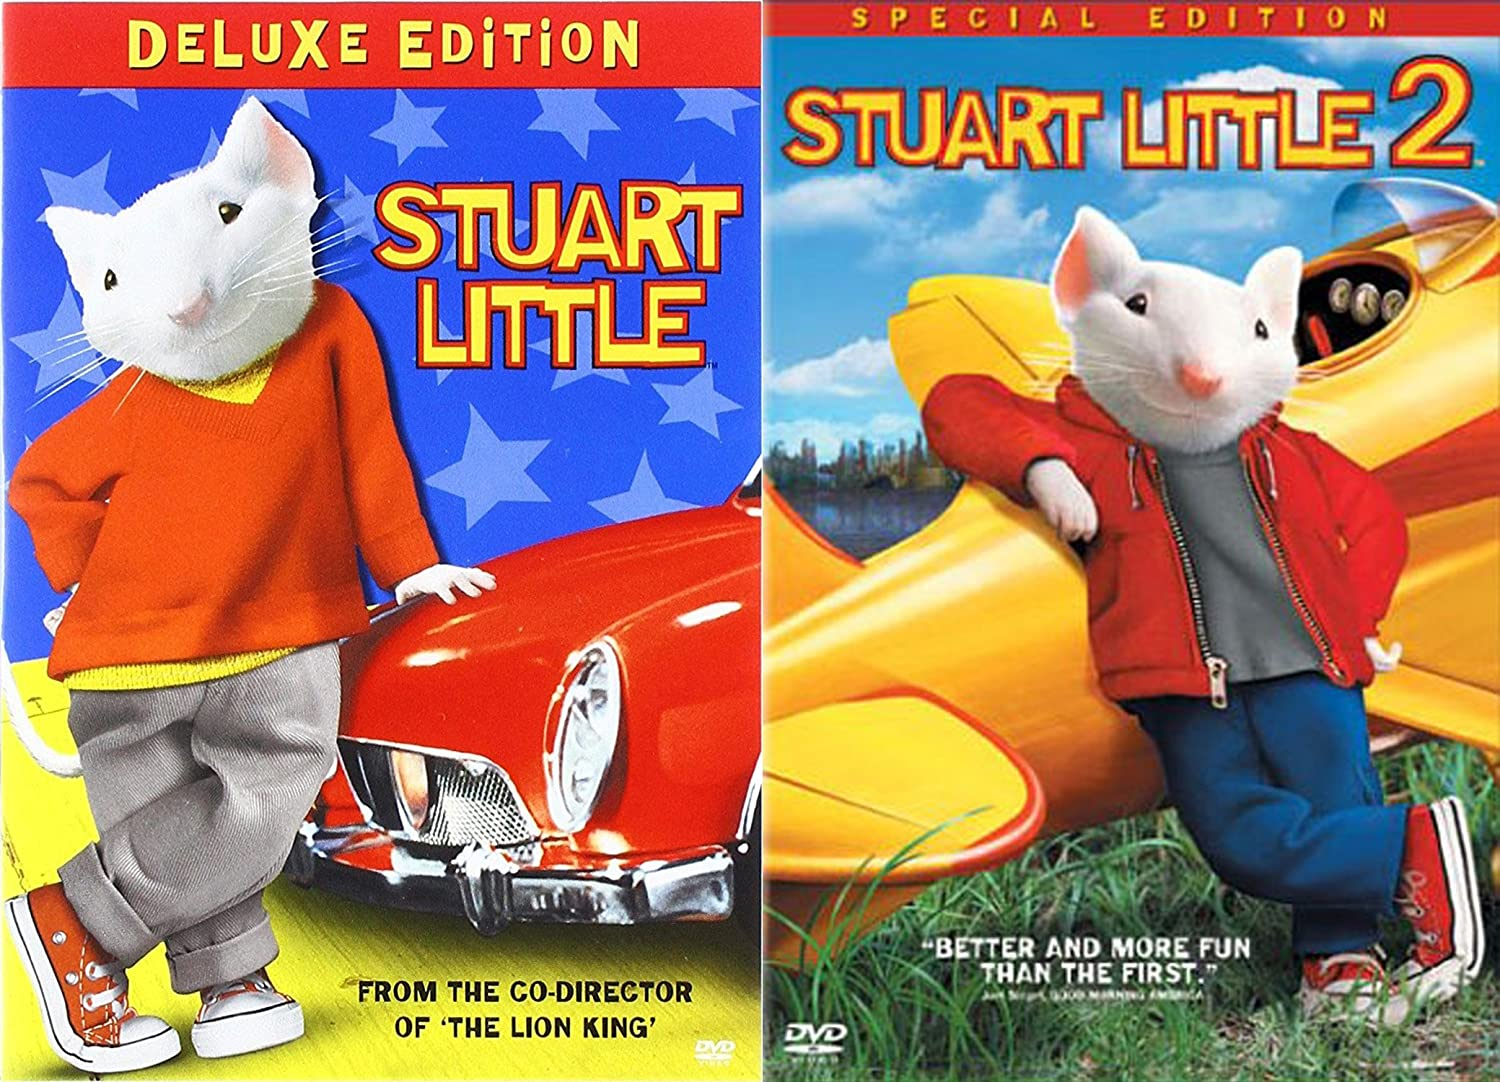 Amazon Com Stuart Little Collection Stuart Little Deluxe Edition Stuart Little 2 Deluxe Edition 2 Dvd Bundle Various Various Movies Tv